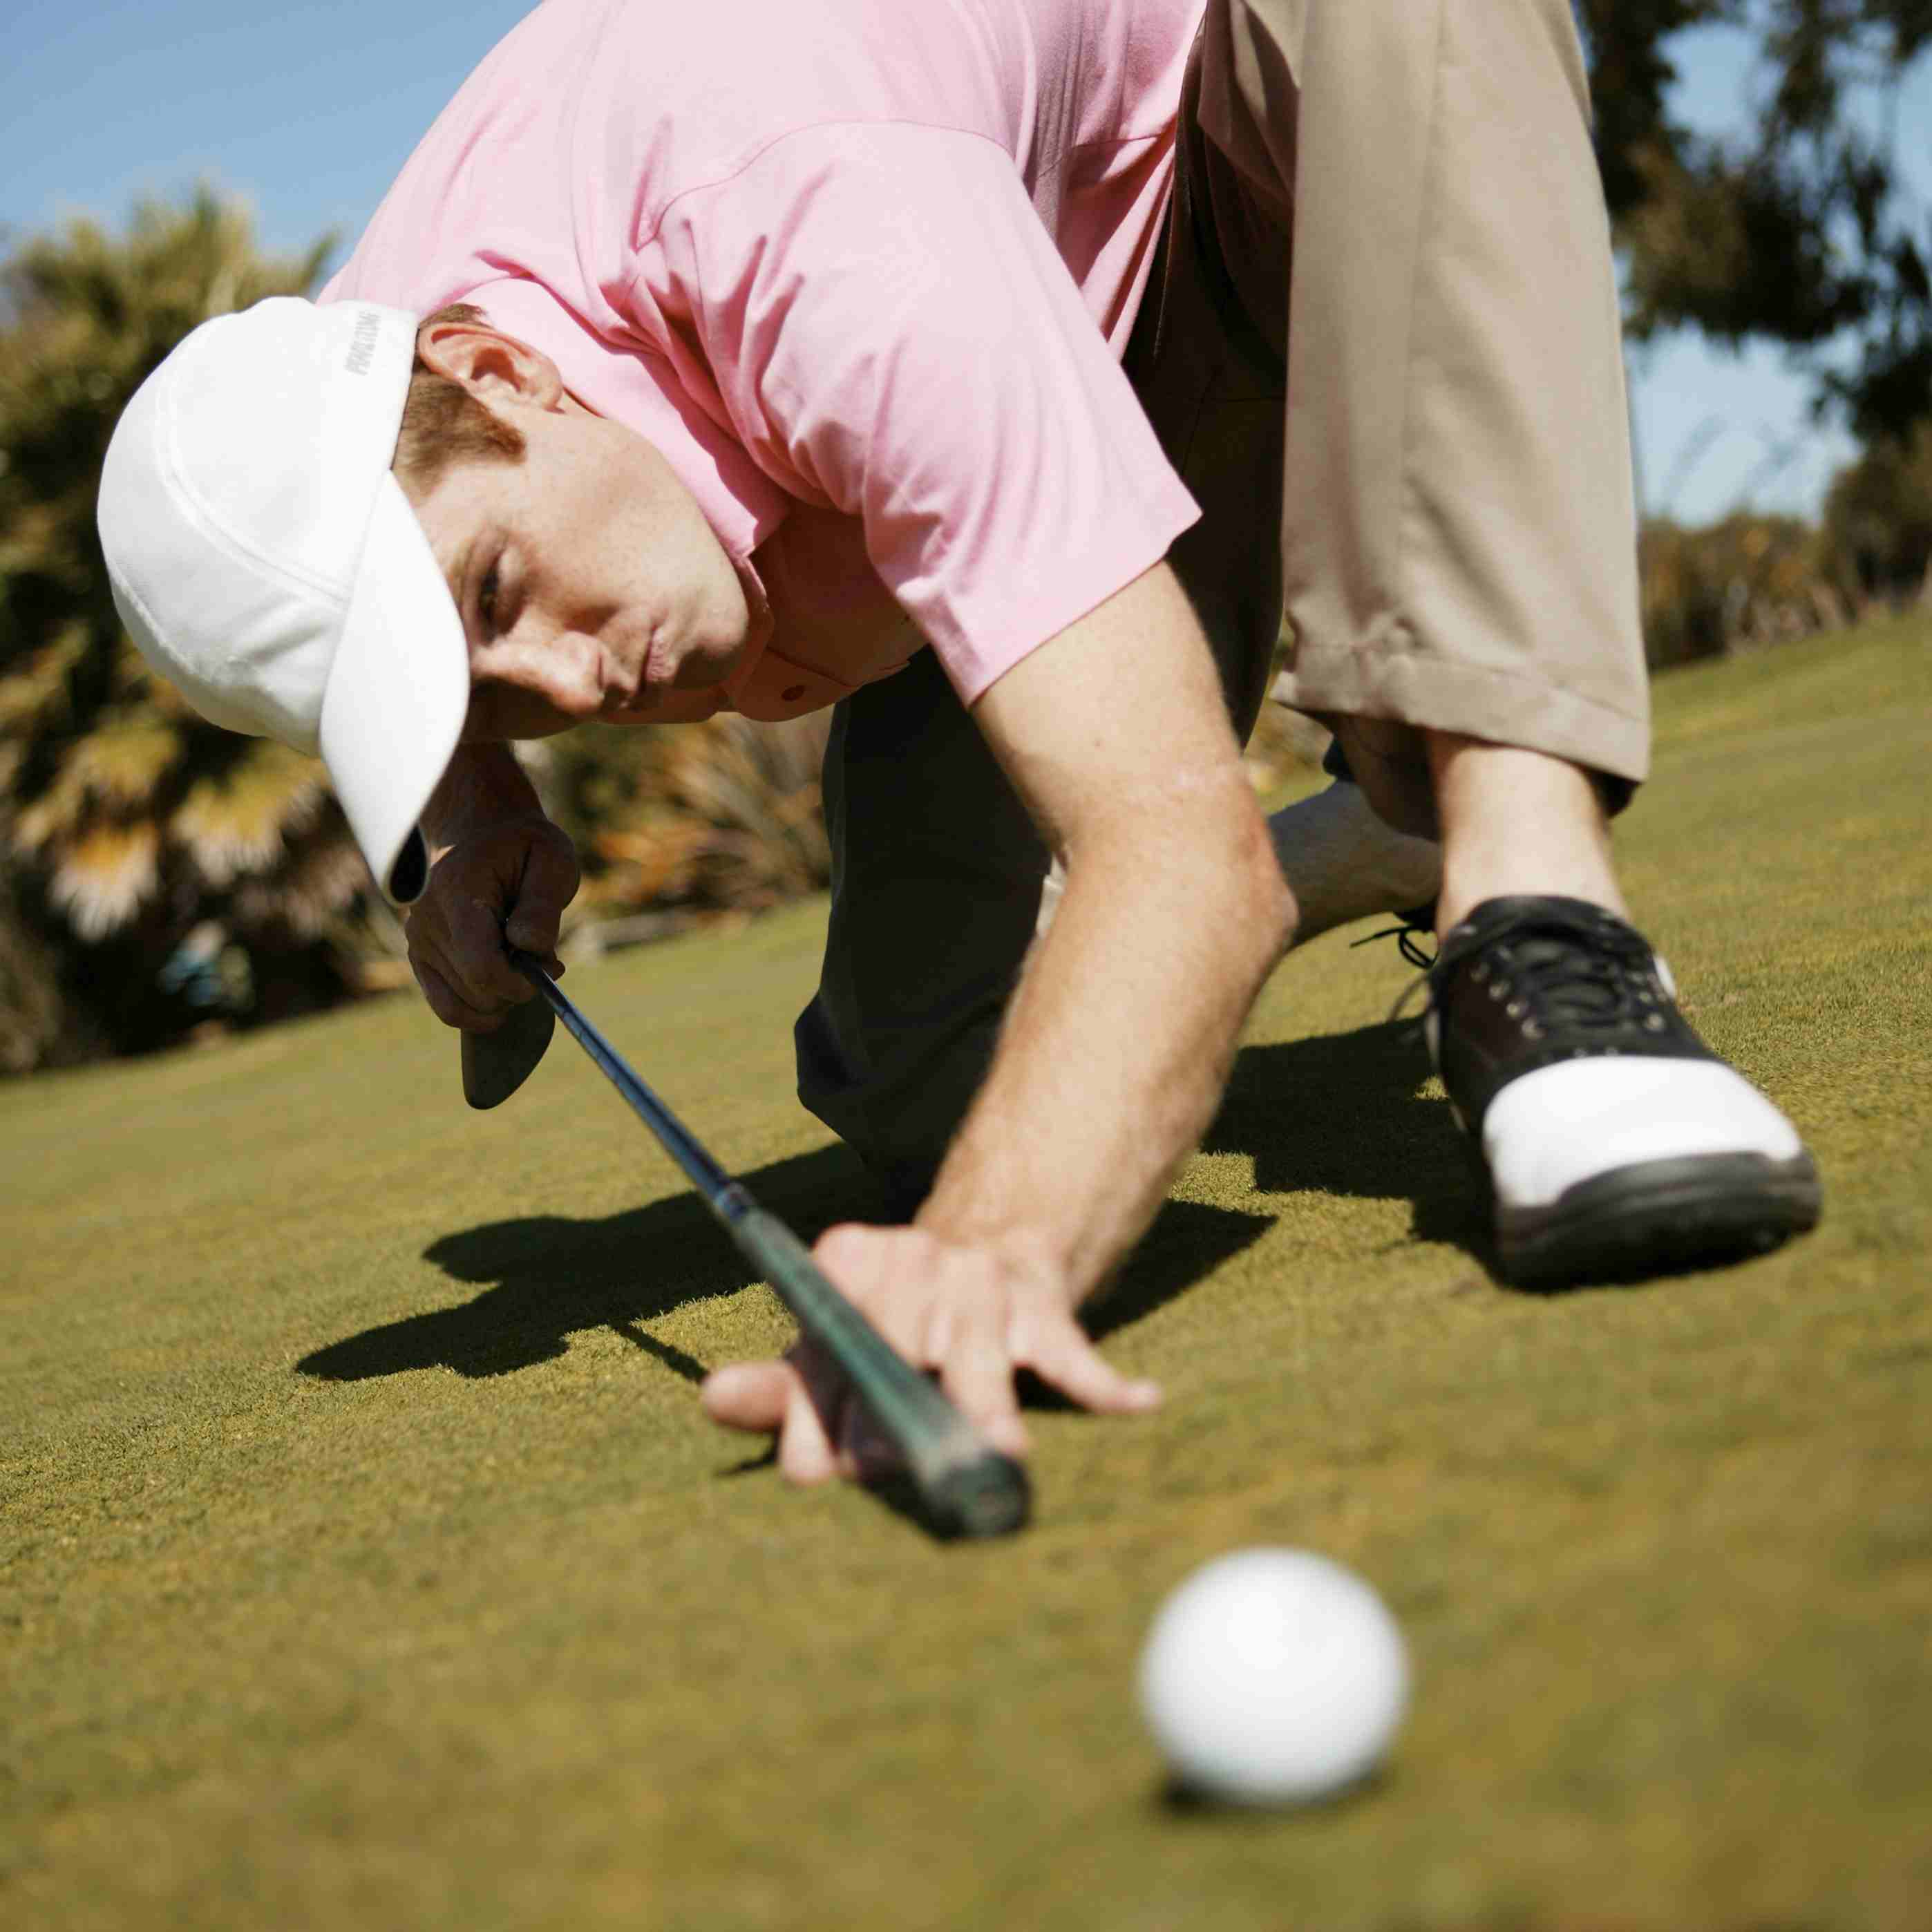 Golfer using his putter like a pool cue on the green